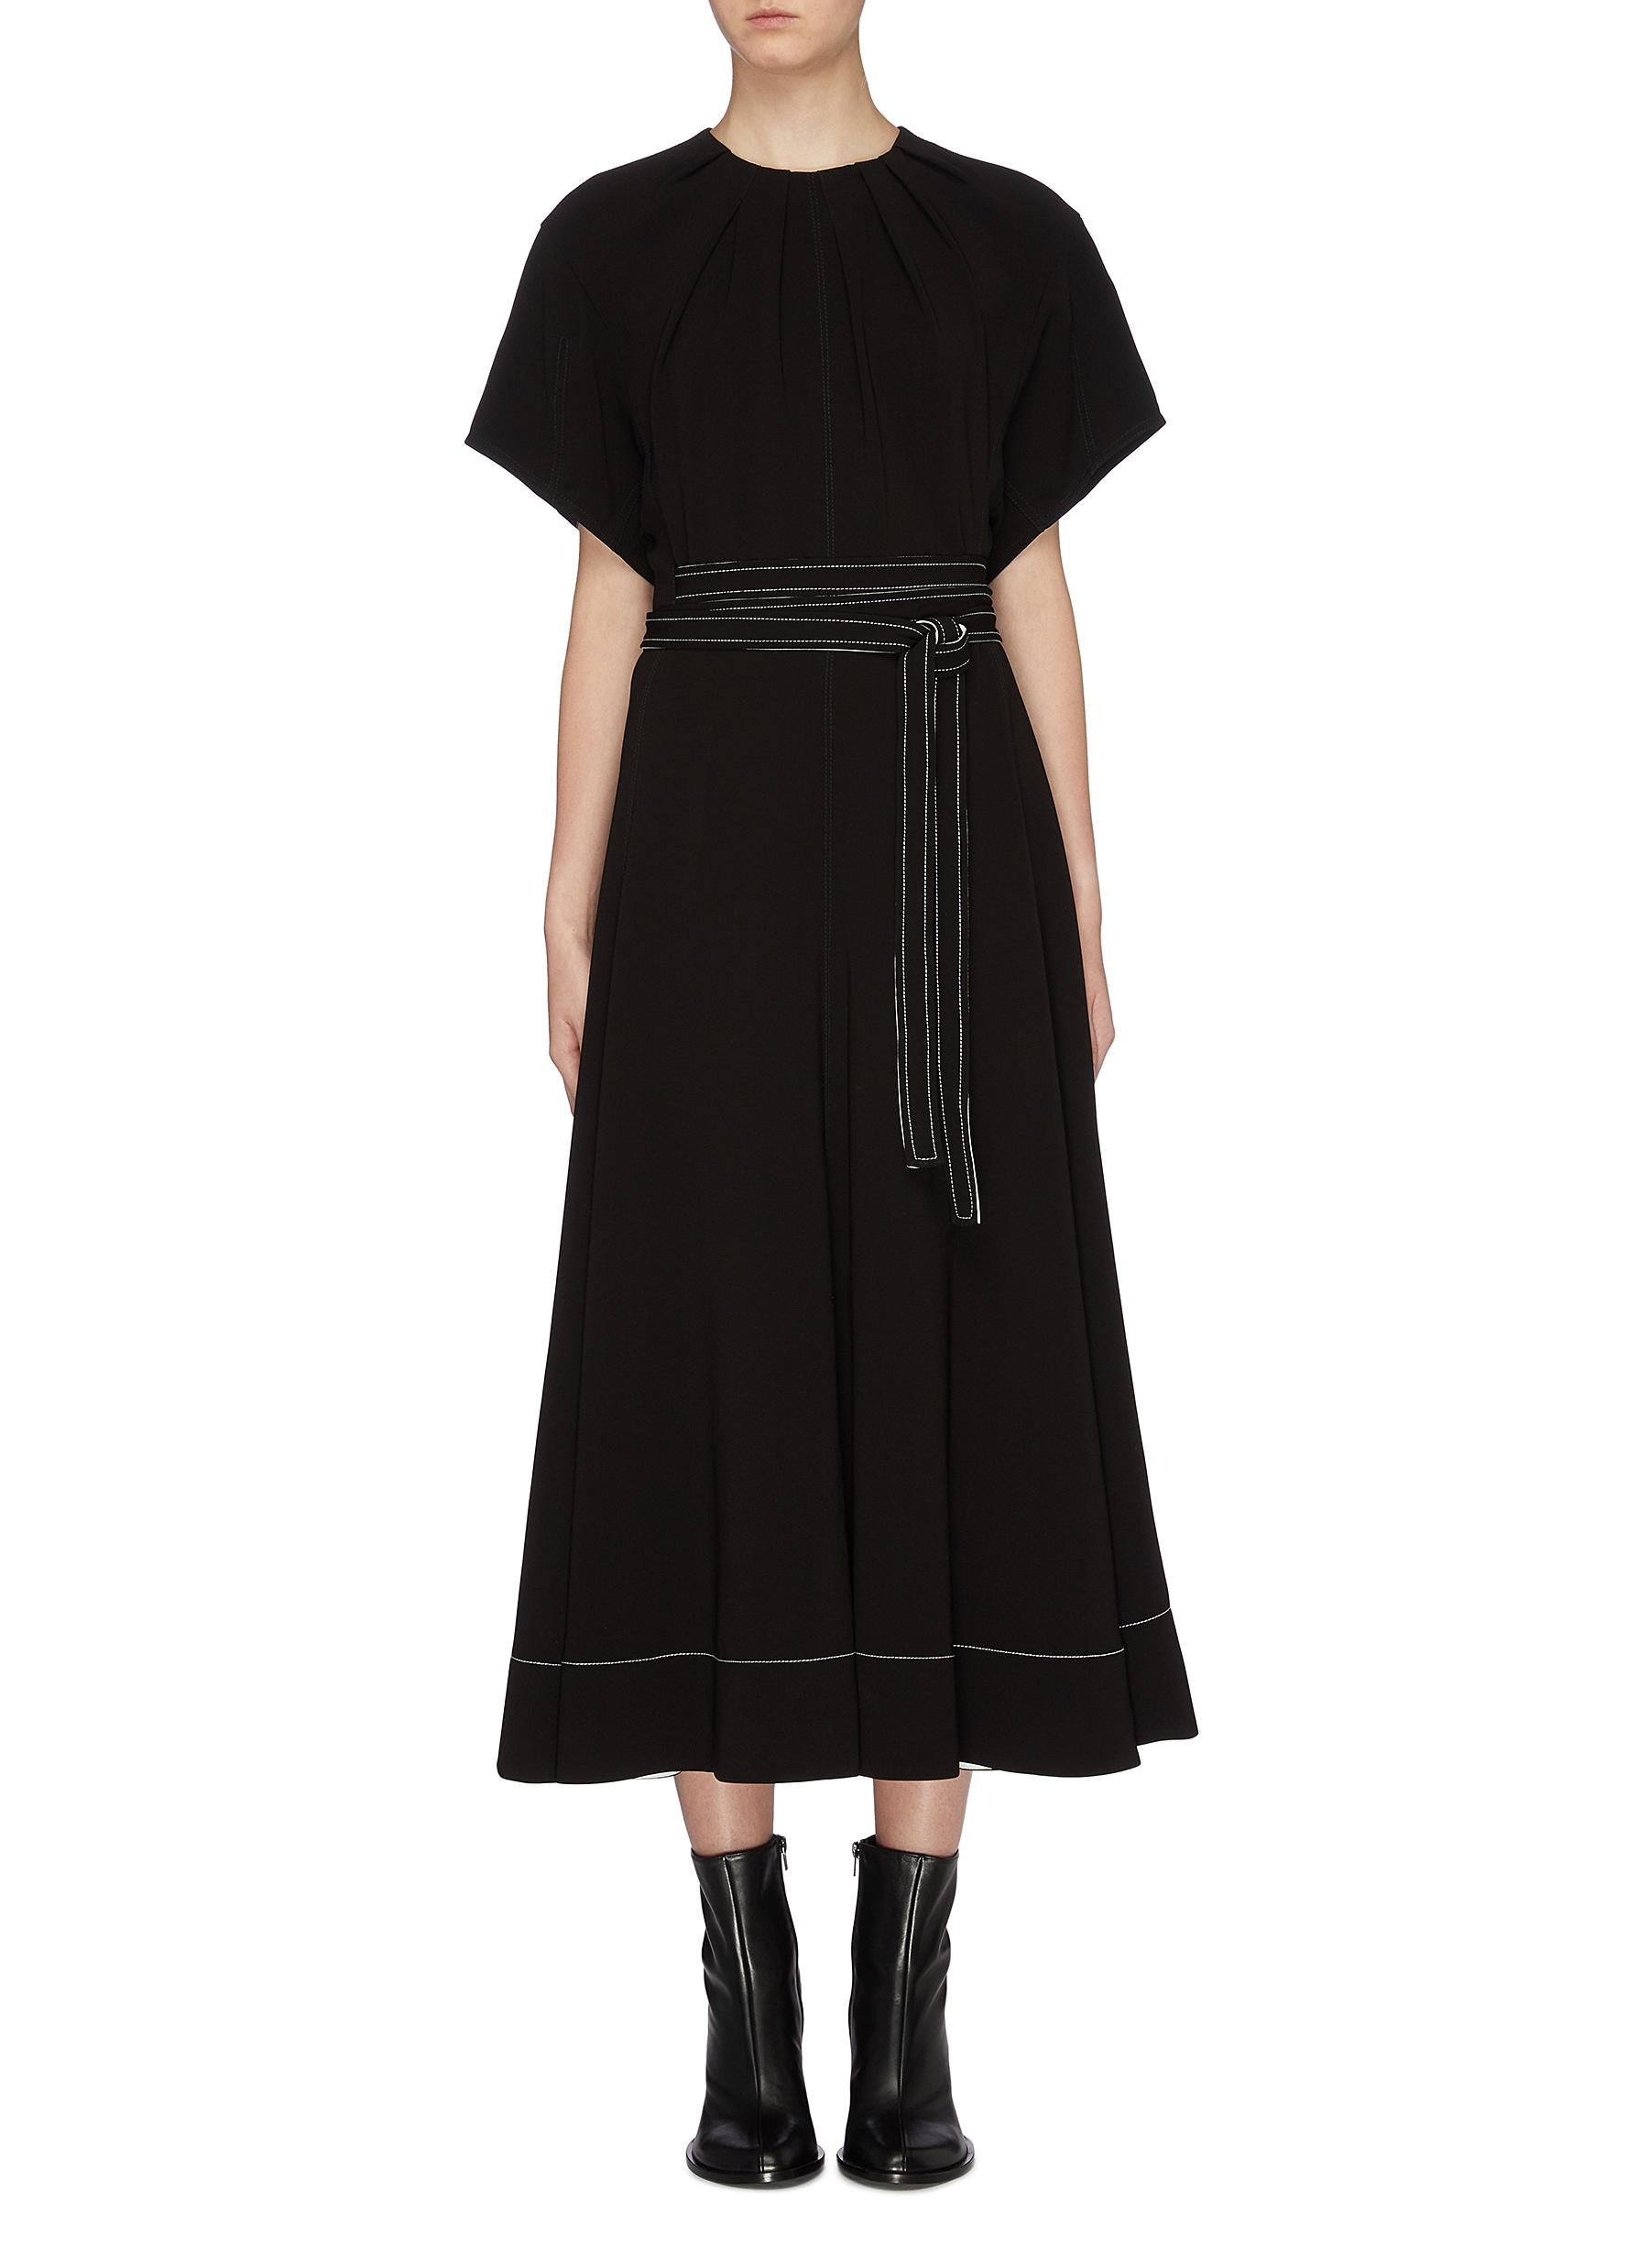 Belted ruched collar crepe dress by 3.1 Phillip Lim